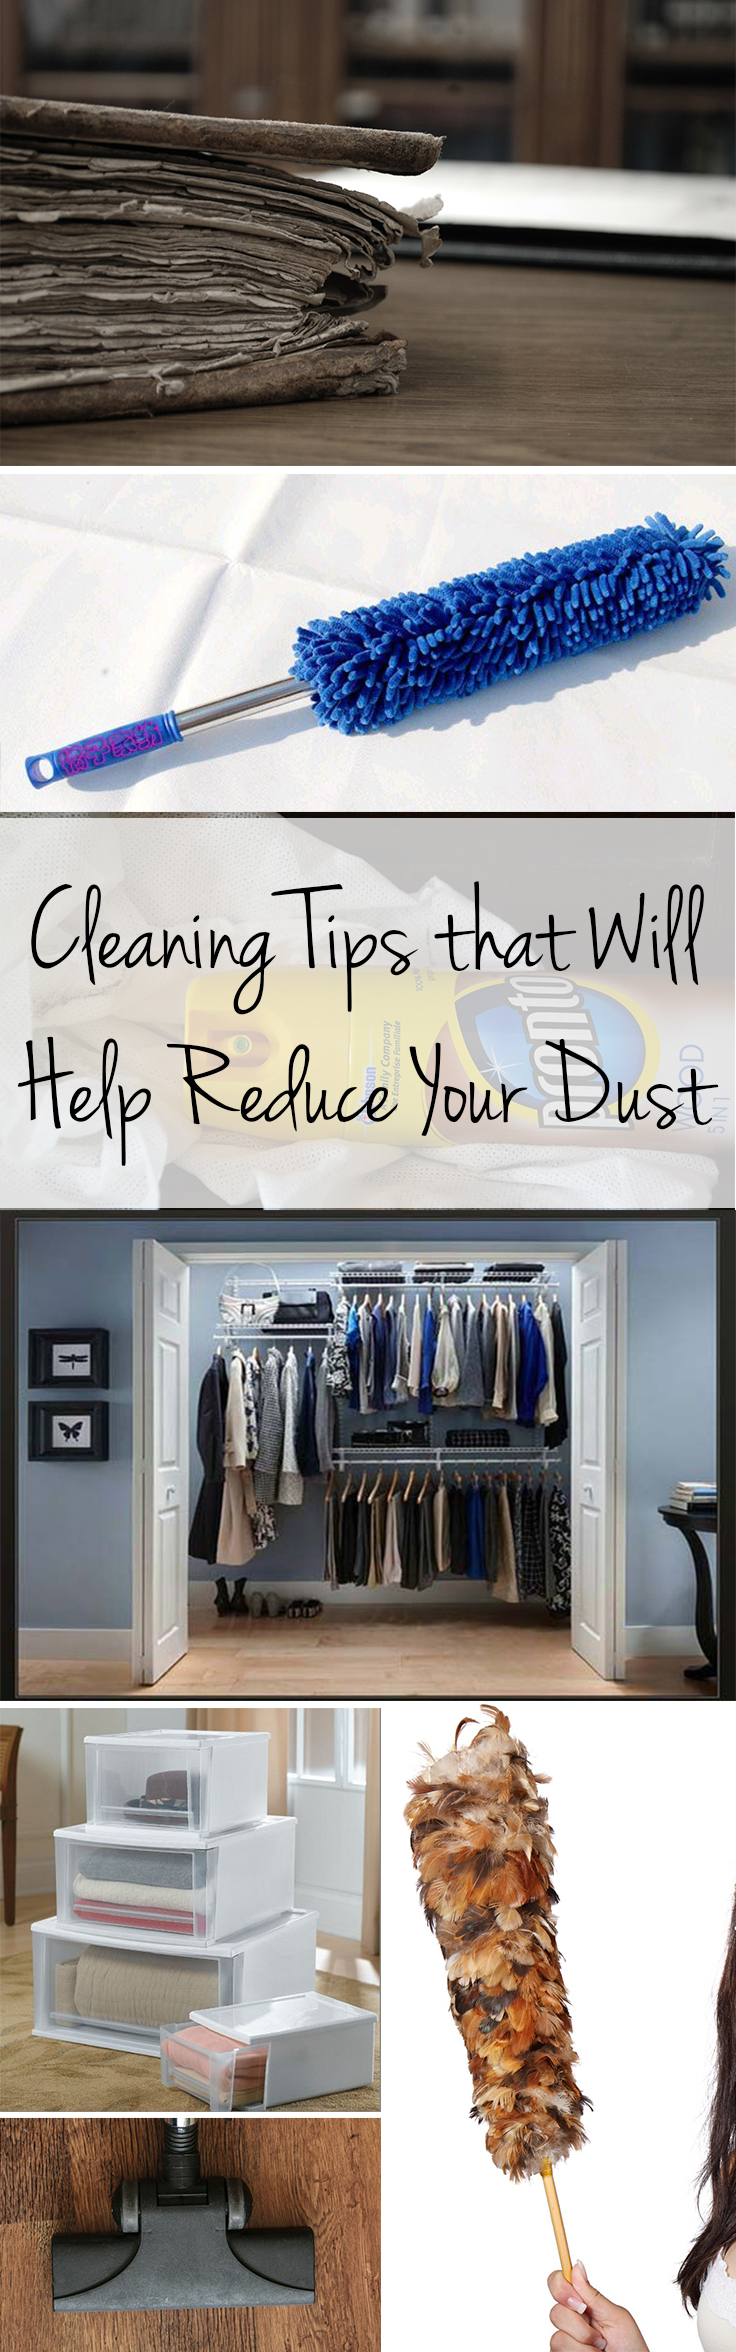 Cleaning Tips that Will Help Reduce Your Dust